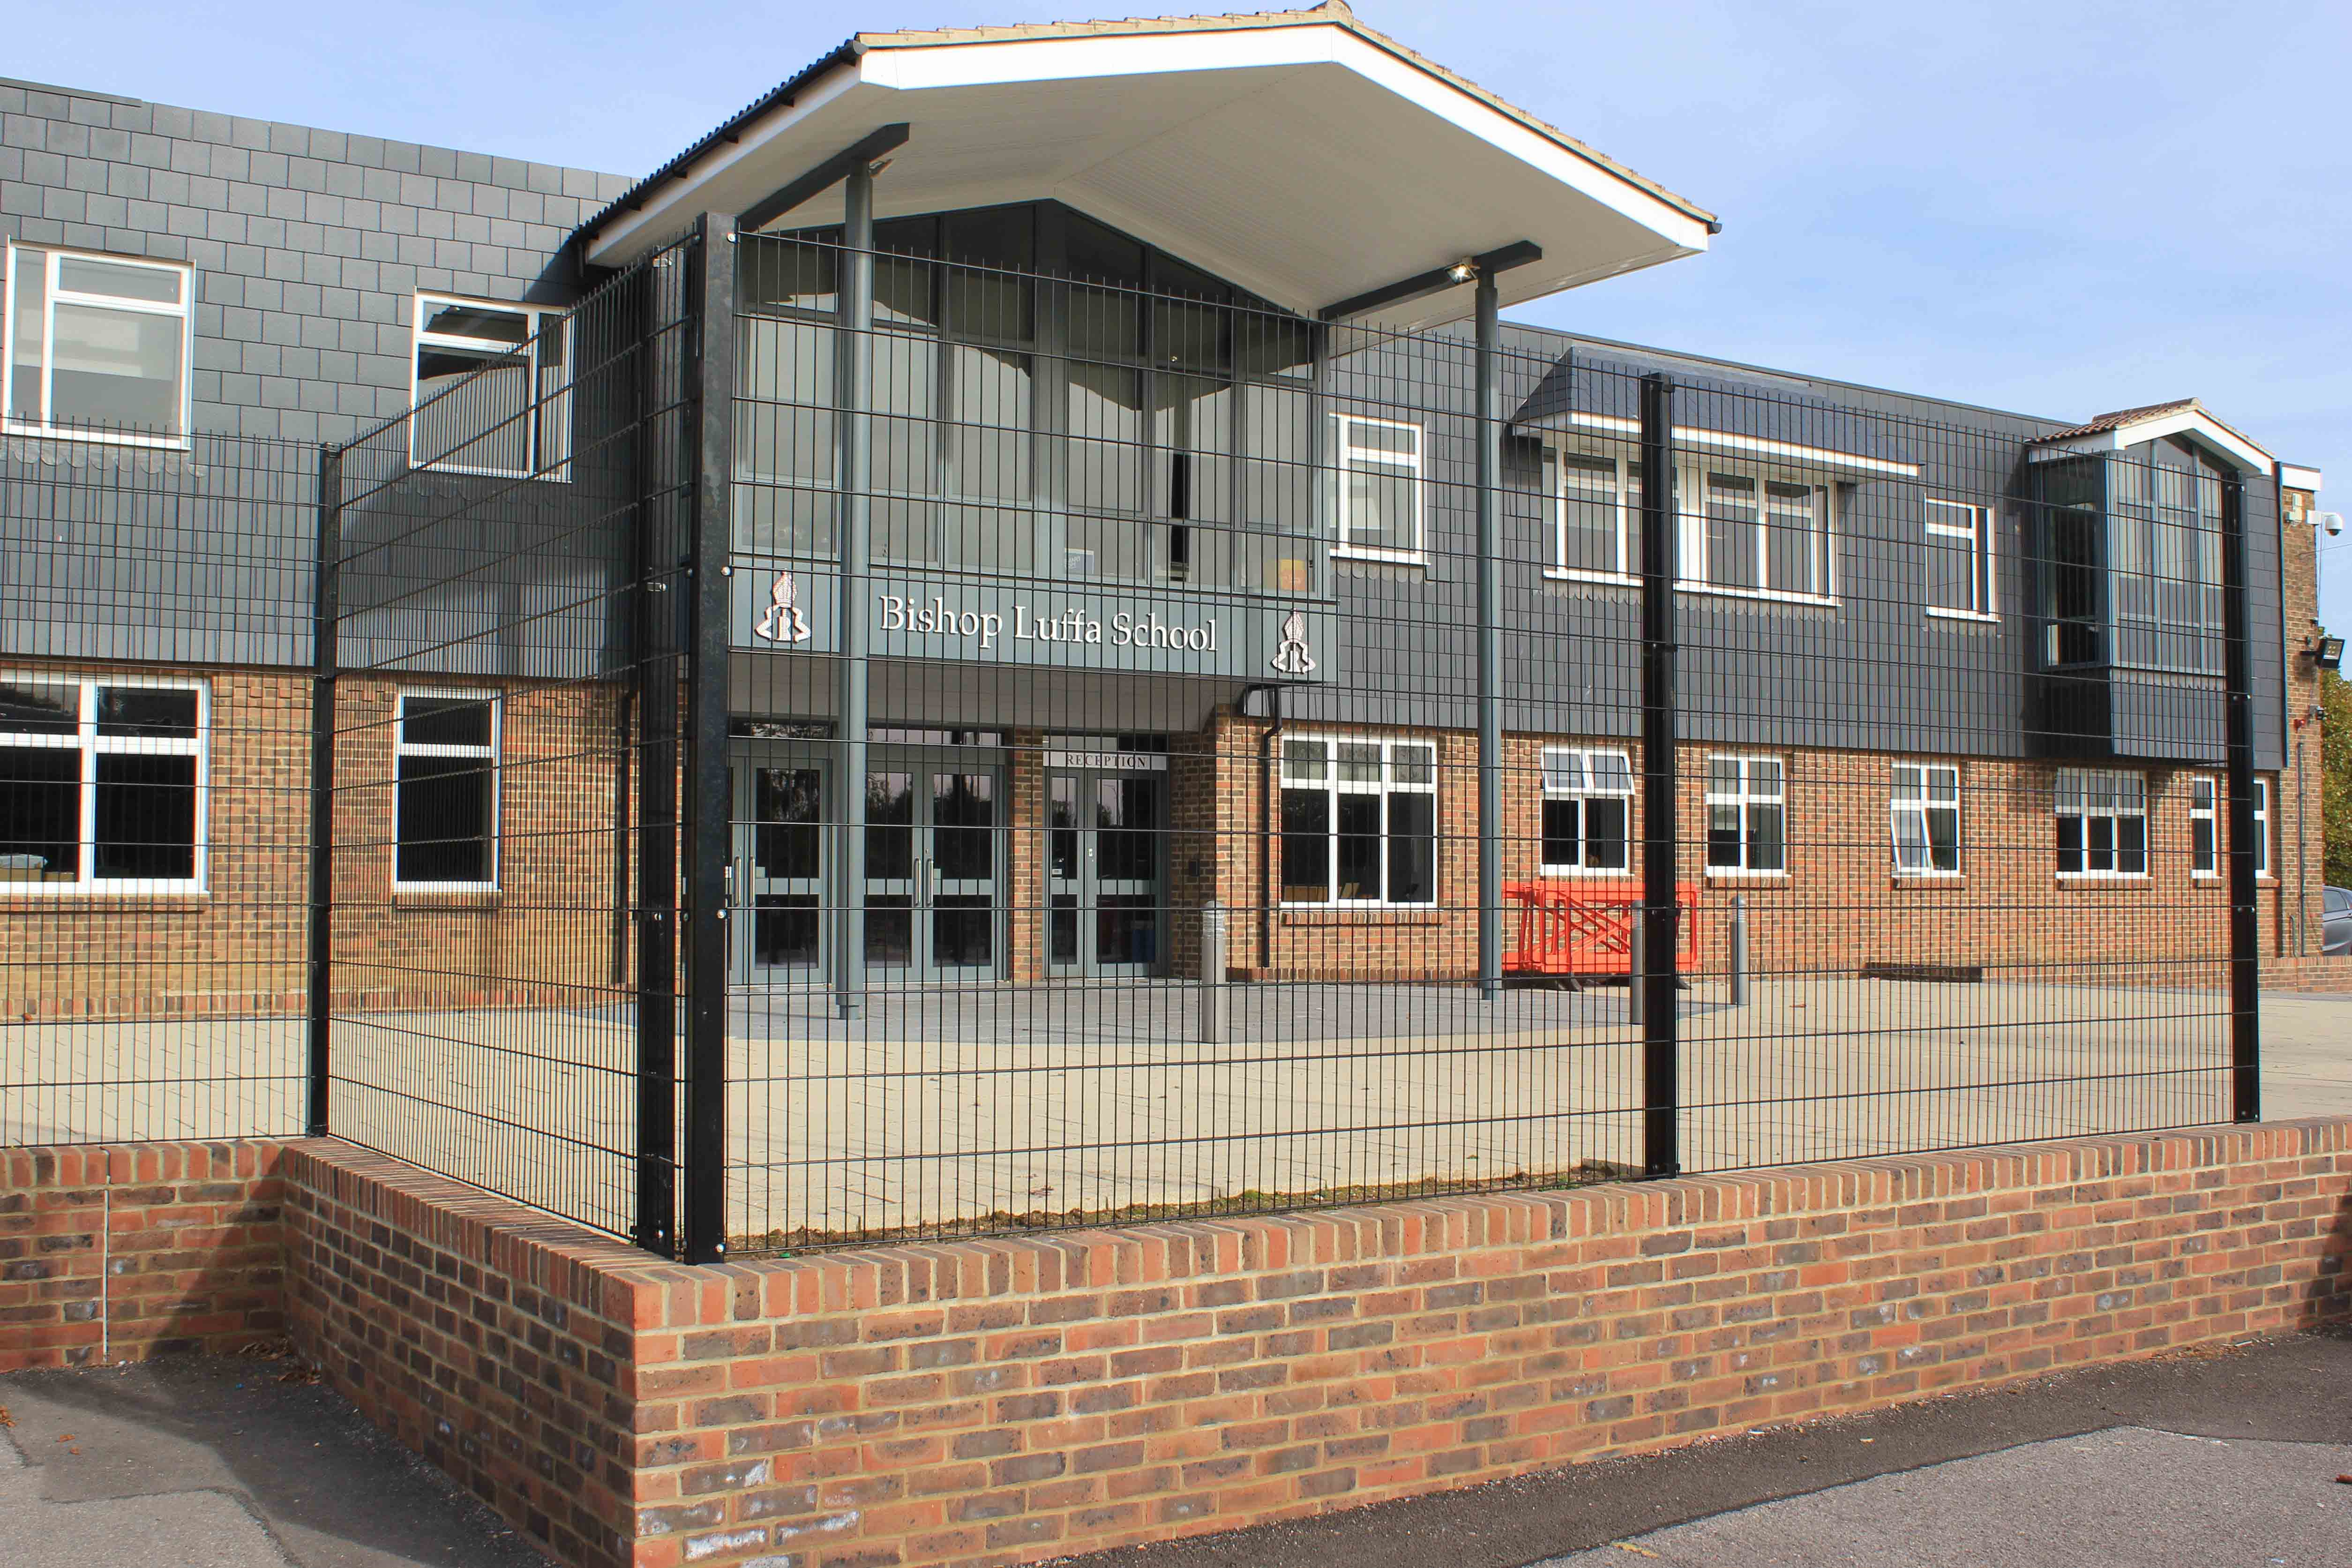 School boundary fencing